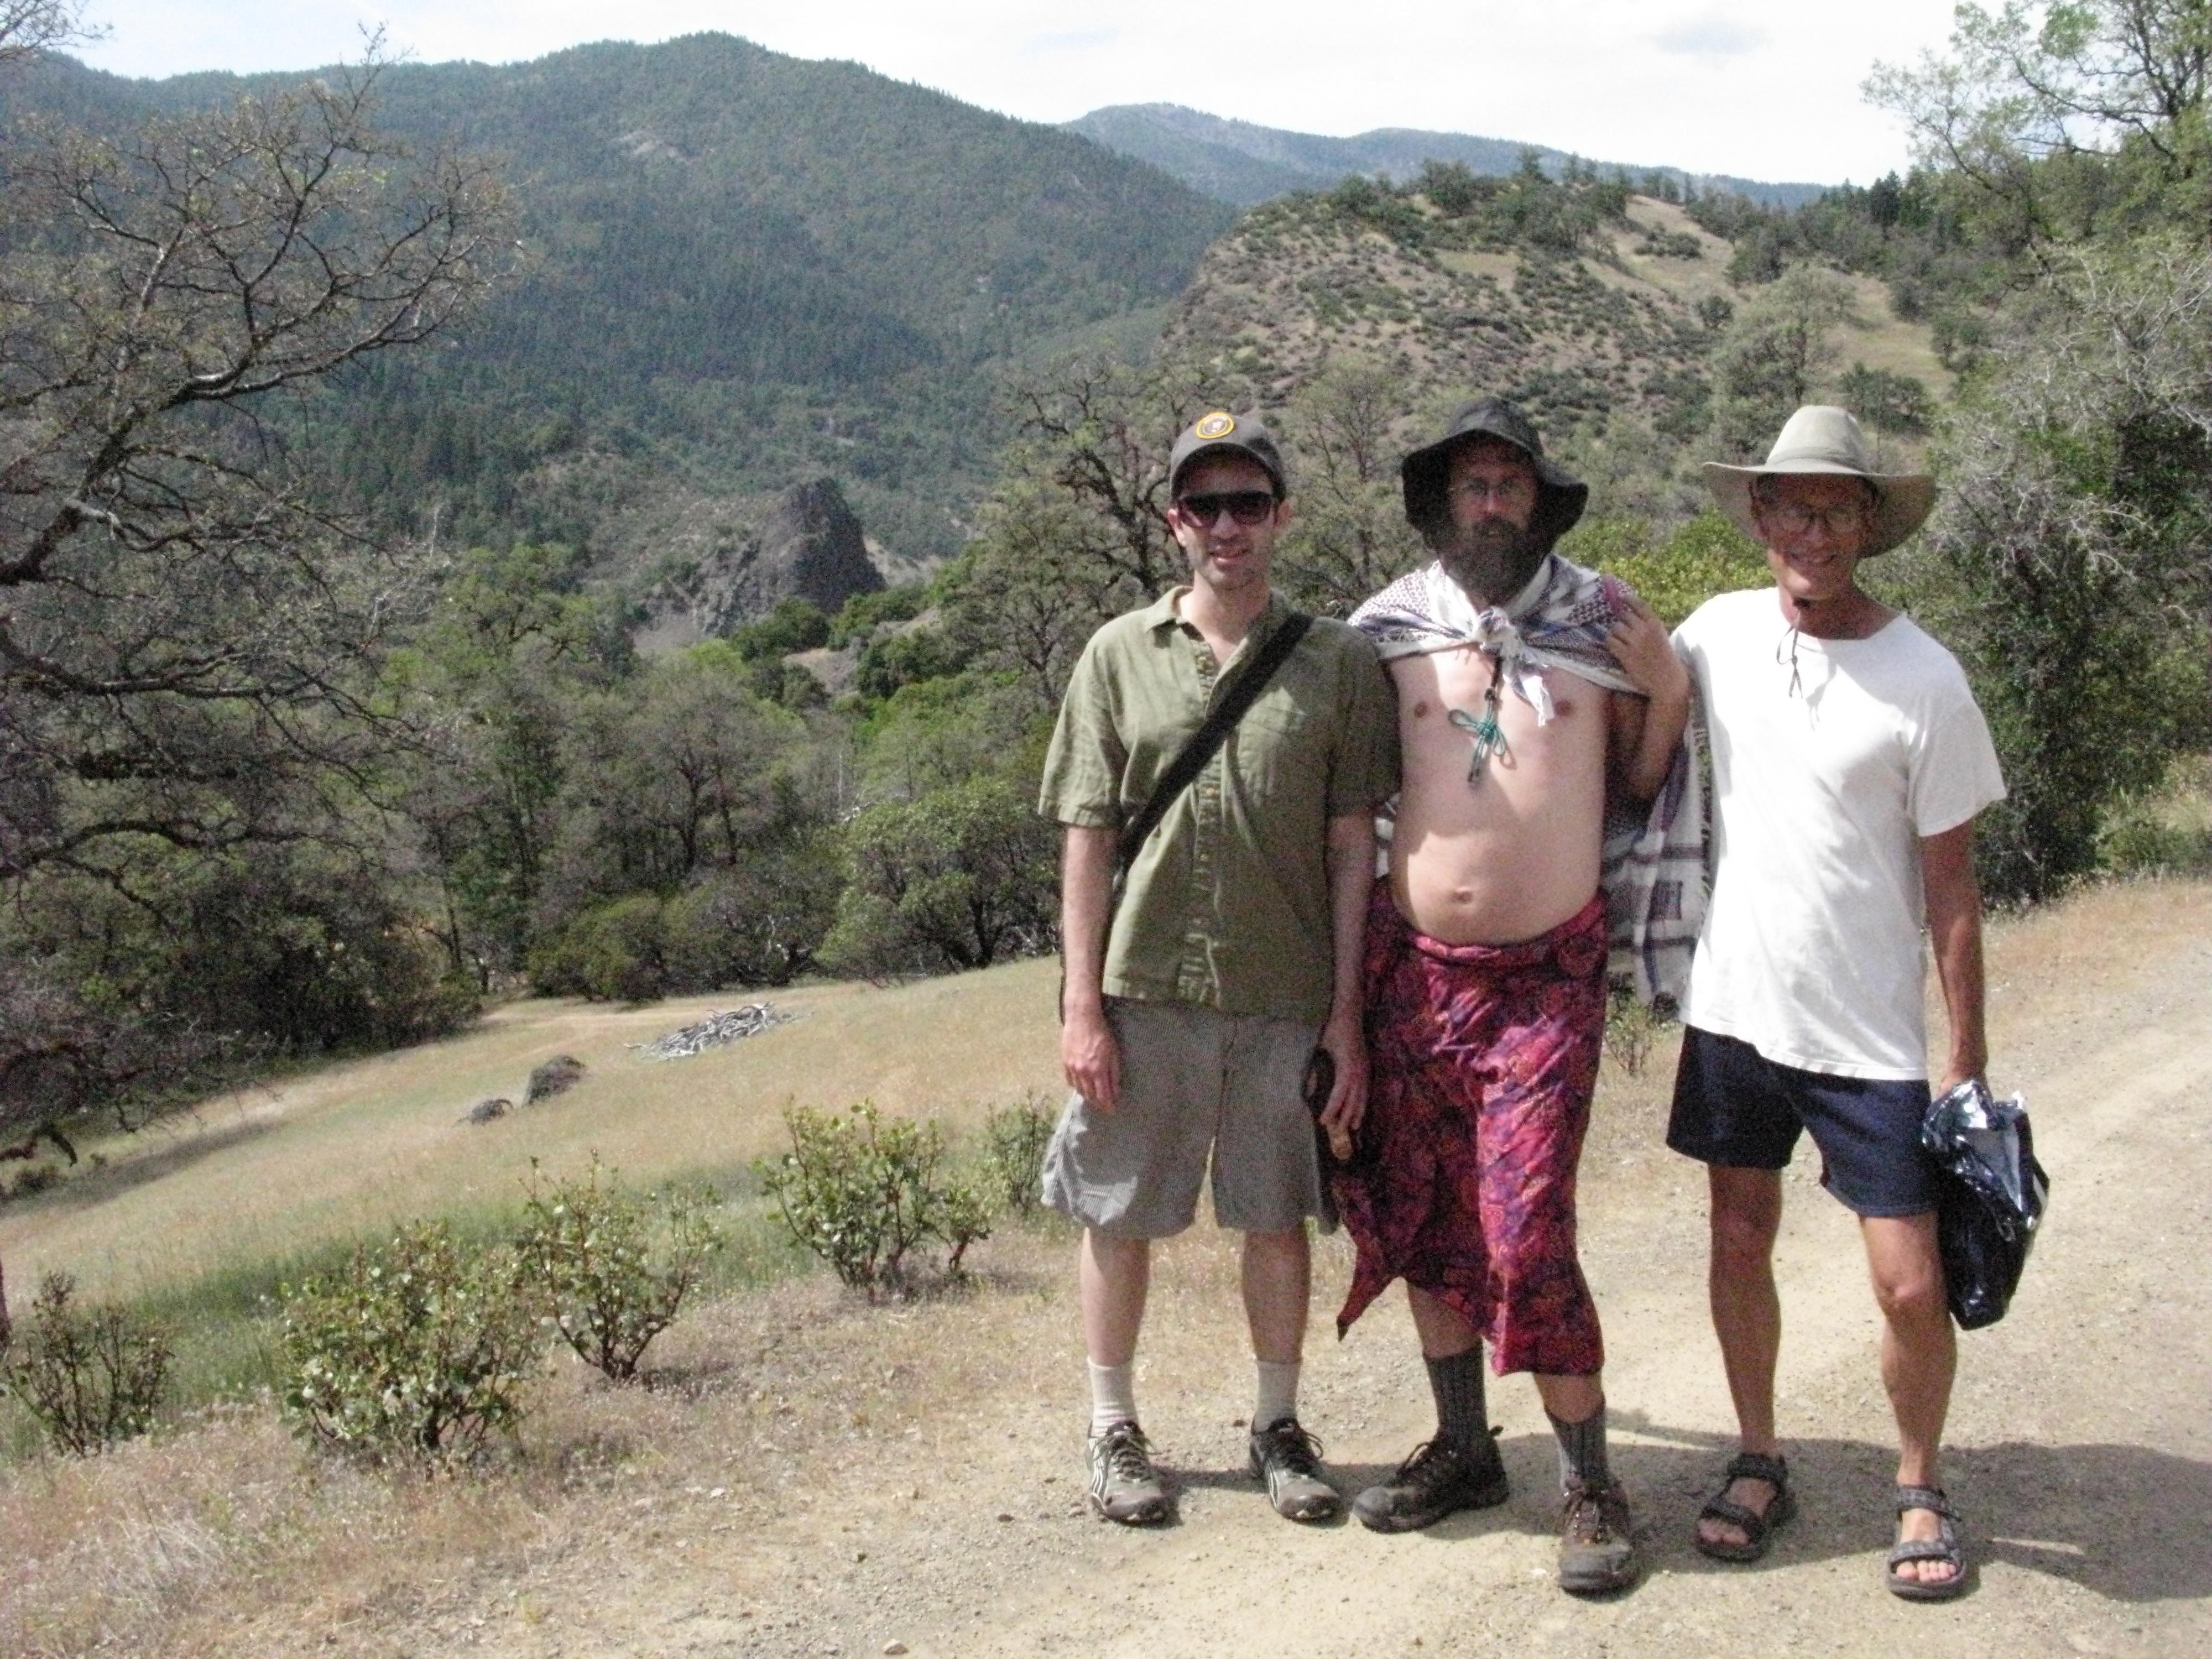 Dale Chrissy and Randy on the Road to Cabin, Covelo Yoga and Healing Festival